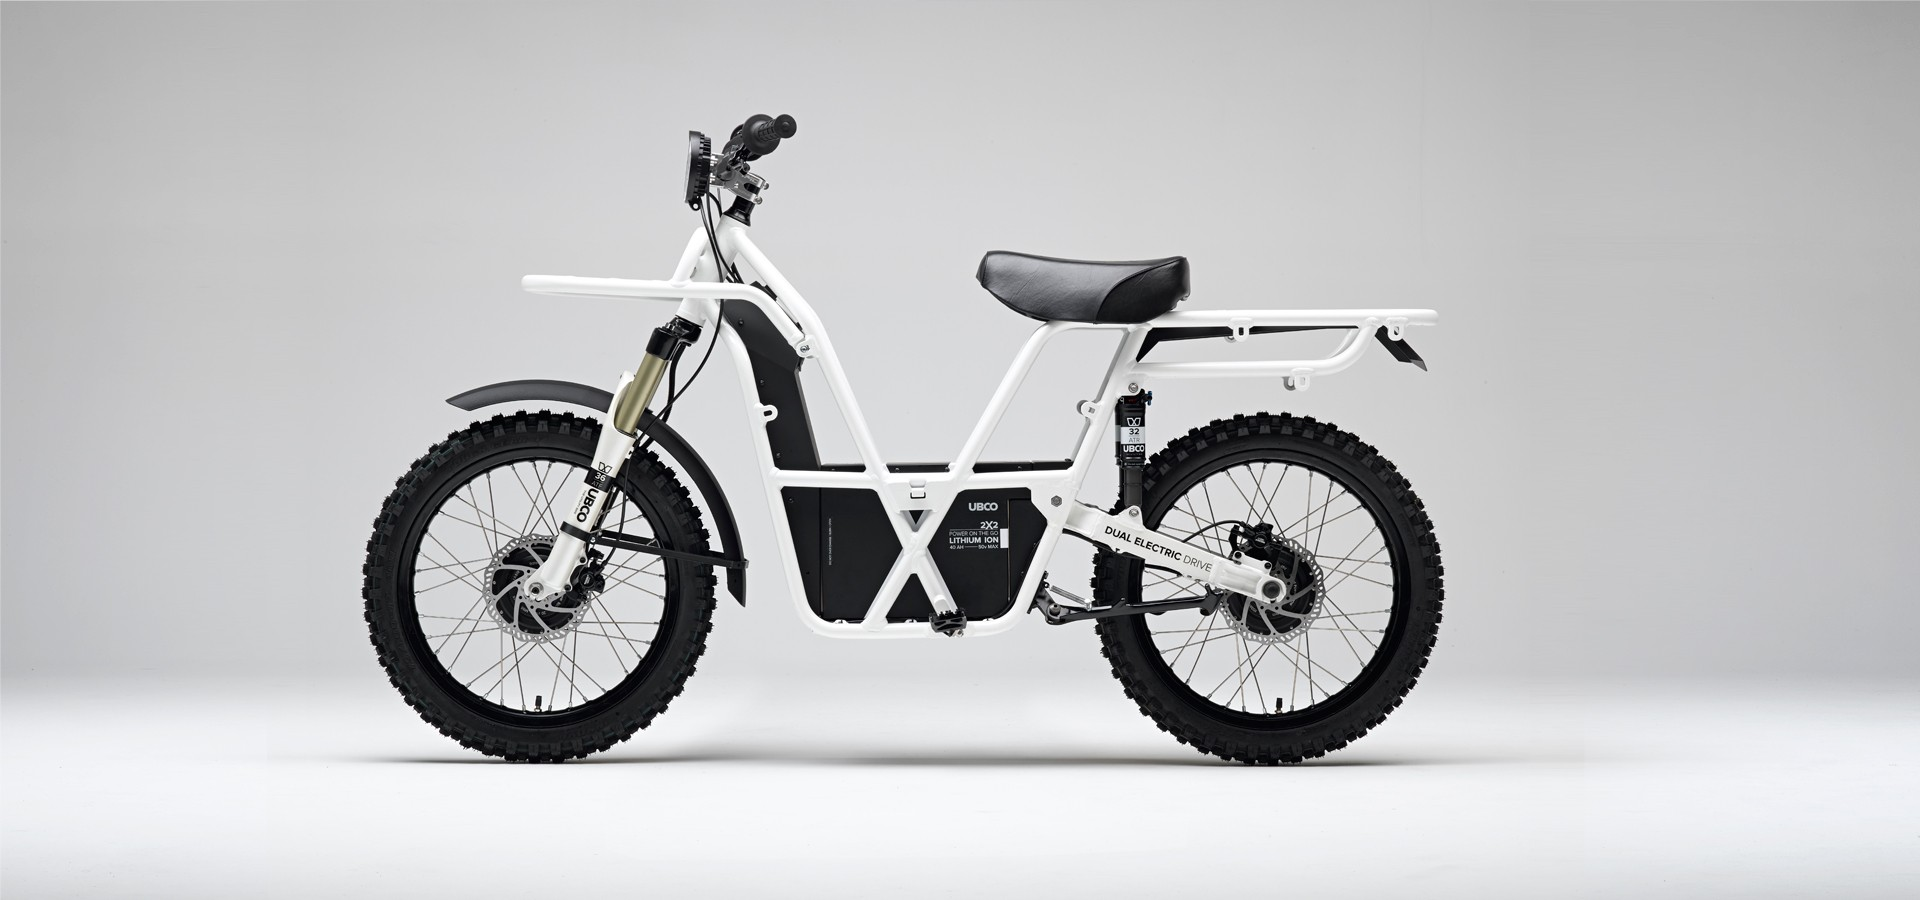 Ubco 2x2 The Two Wheel Drive Electric Enduro Bike